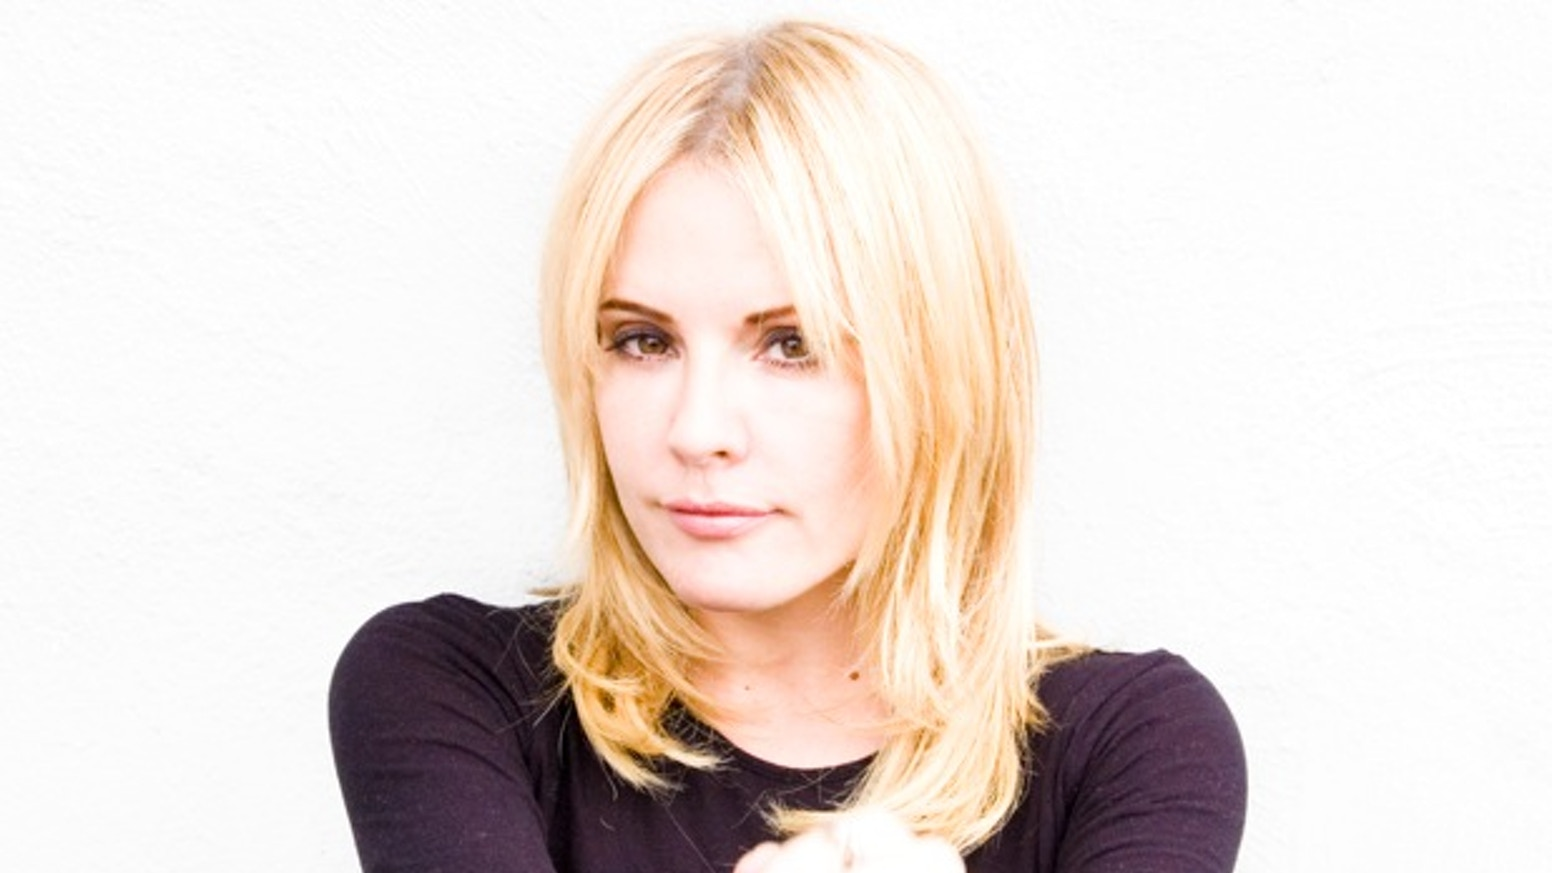 Emma Caulfield Bio, Wiki, Age, Parents, Net Worth, Salary, Relationship